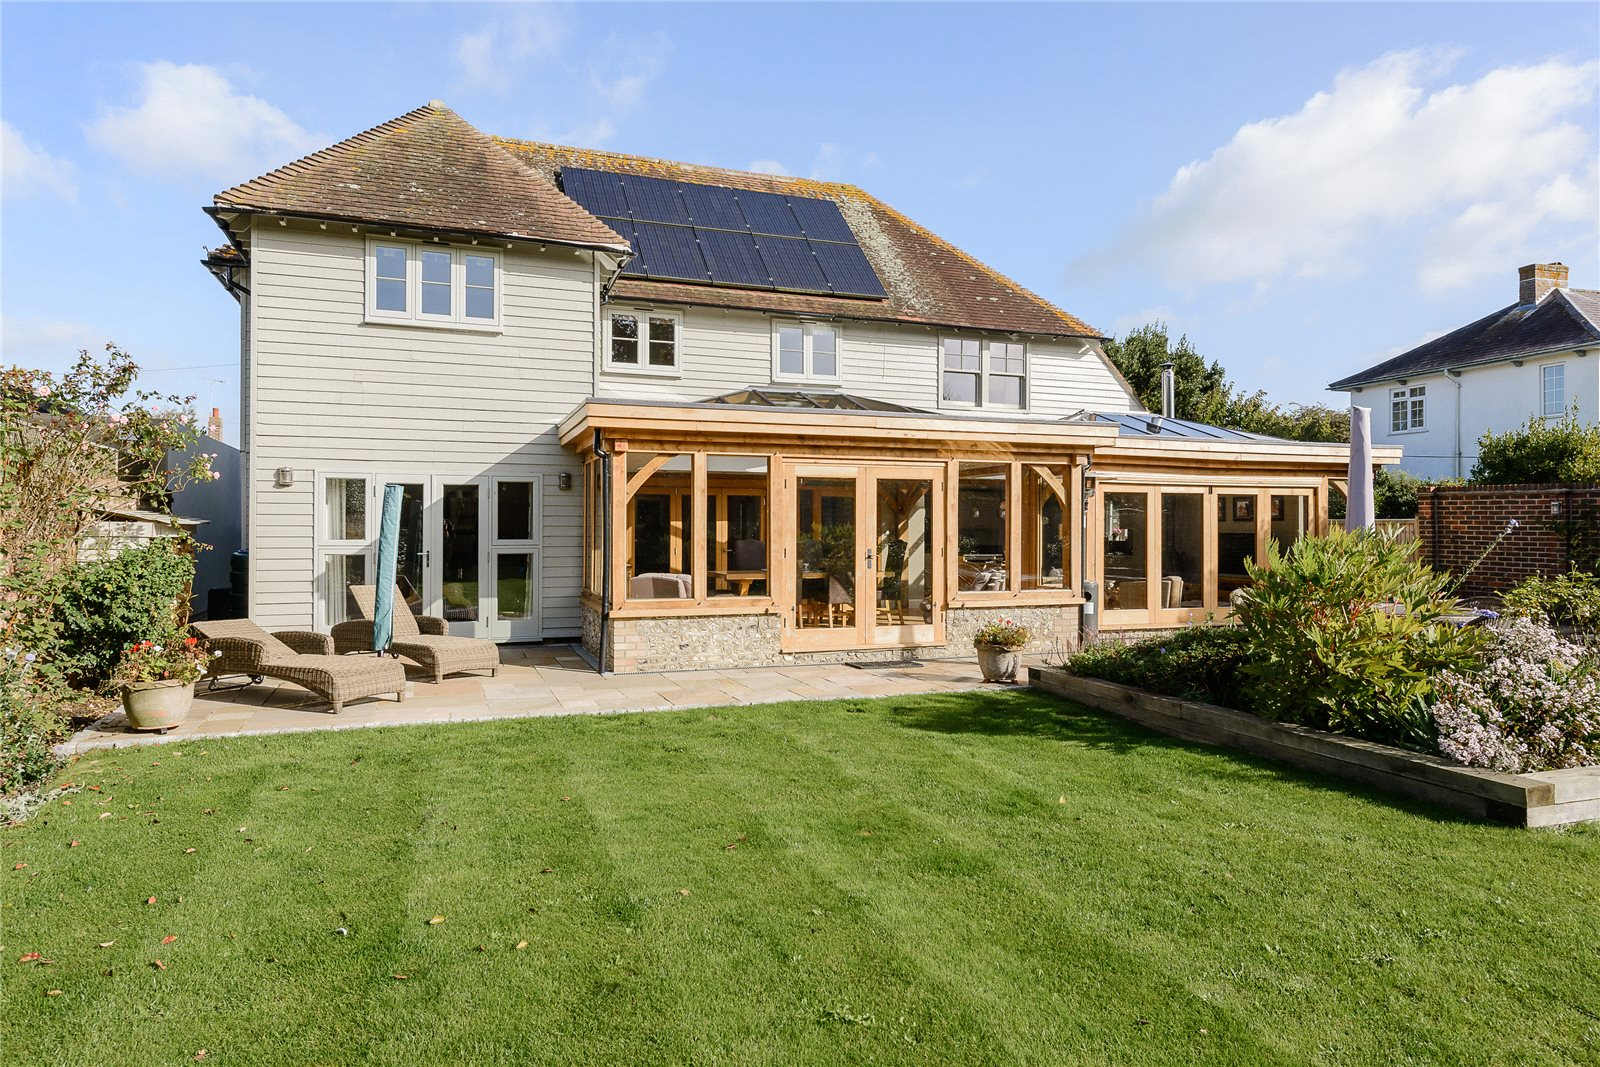 Casa Unifamiliar por un Venta en Harbour Way, Bosham, Chichester, West Sussex, PO18 Chichester, Inglaterra